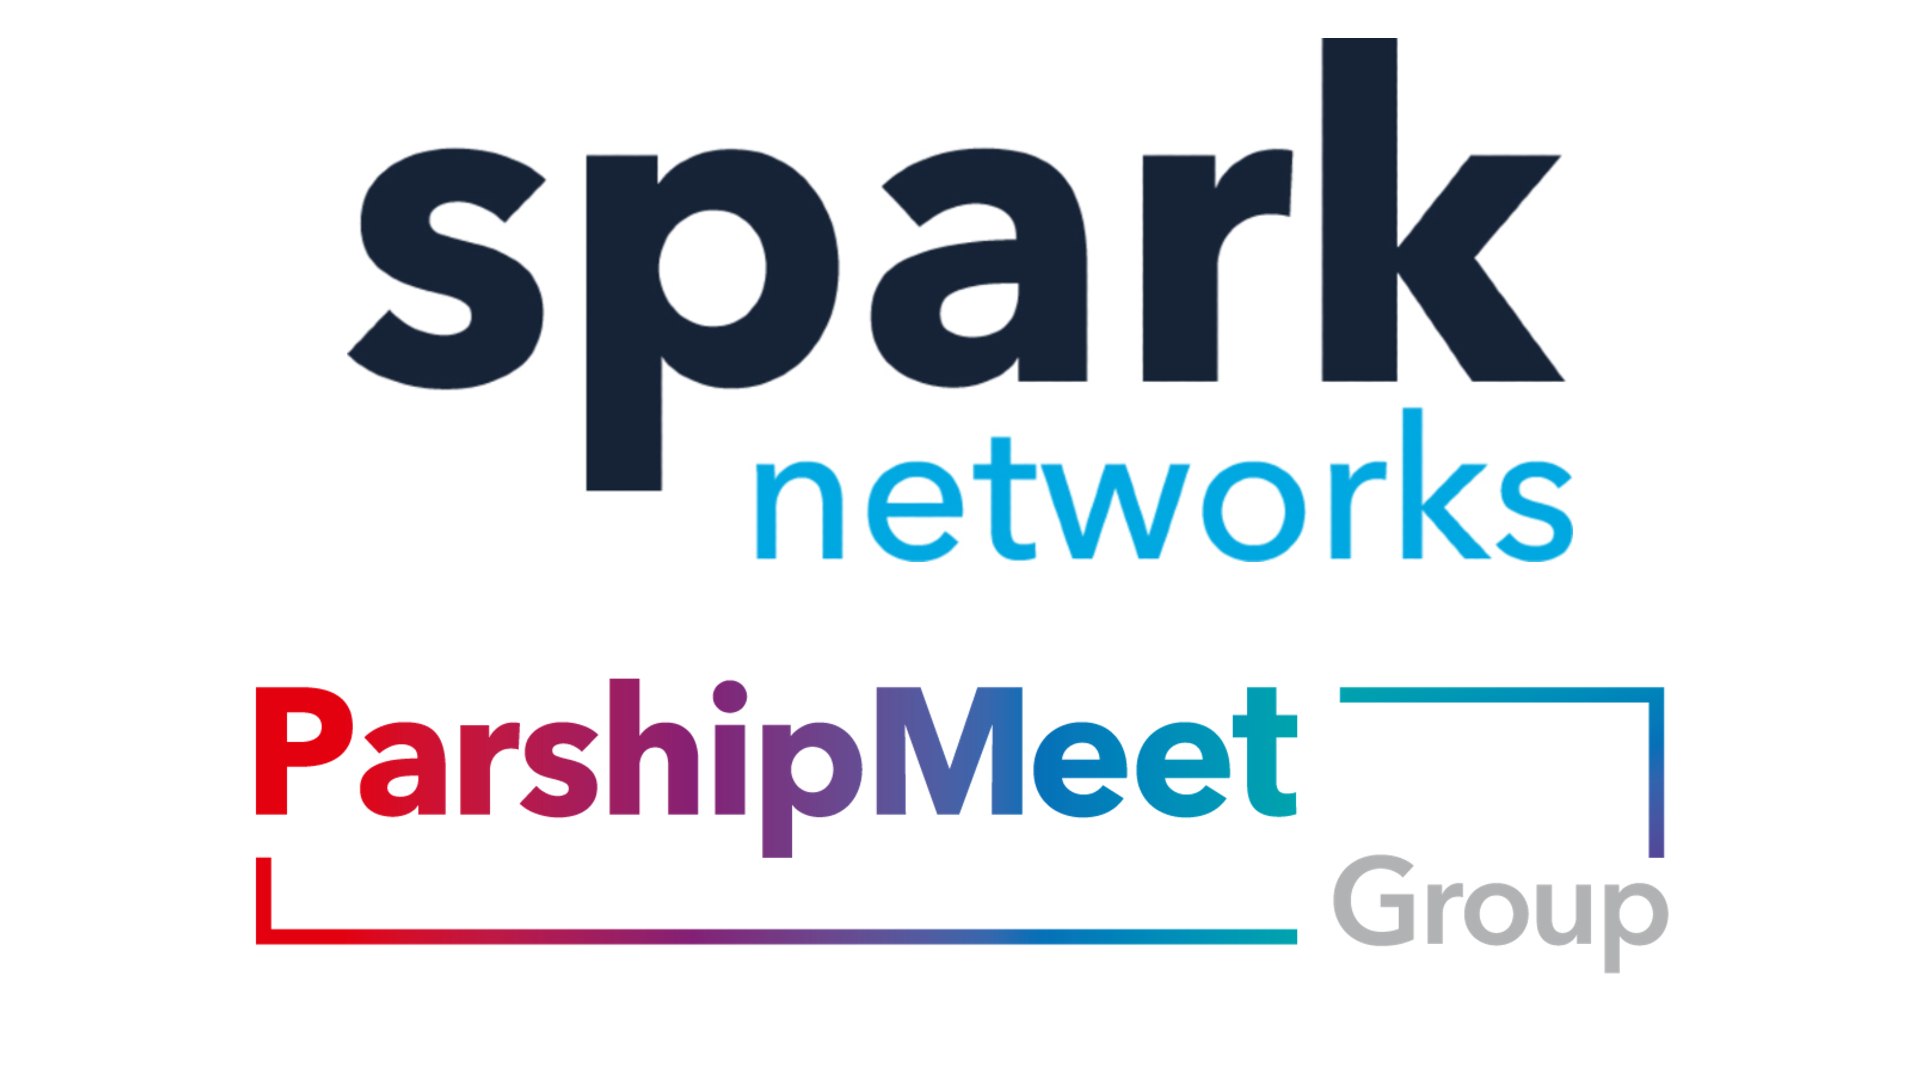 Spark Networks to Add Livestreaming on Zoosk Through ParshipMeet Group Partnership